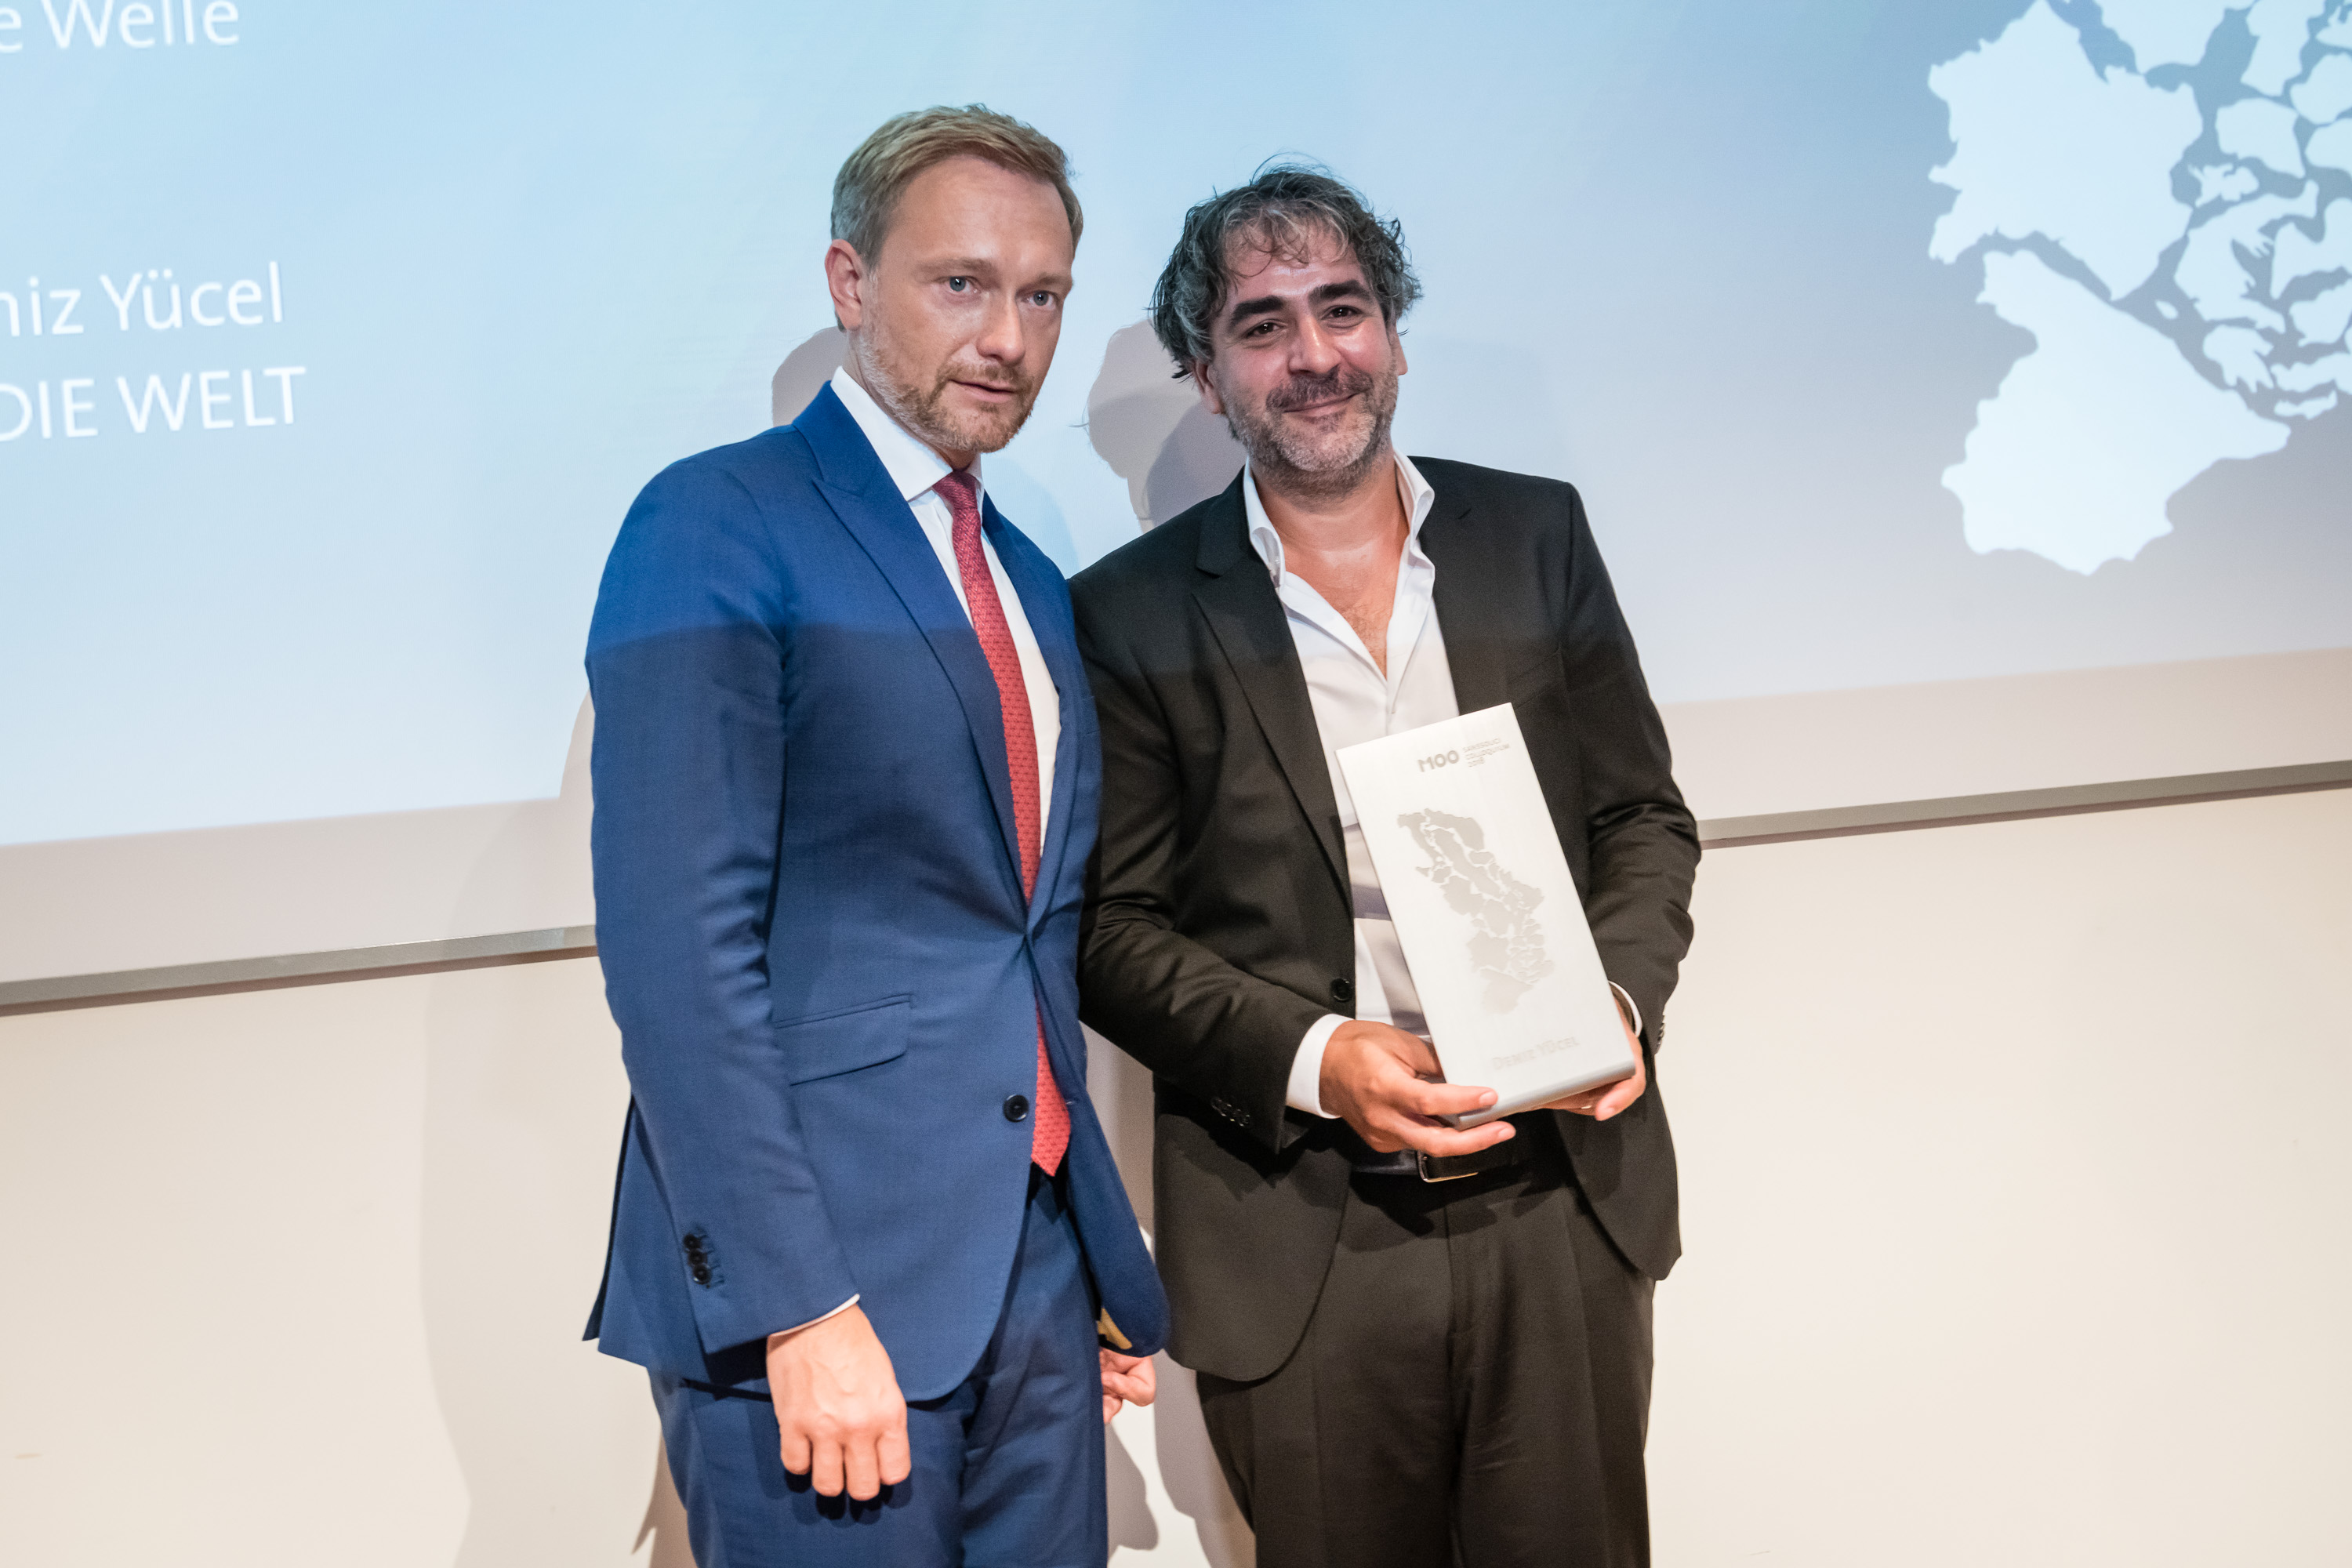 M100 Media Award 2018 mit Deniz Yücel und Christian Lindner